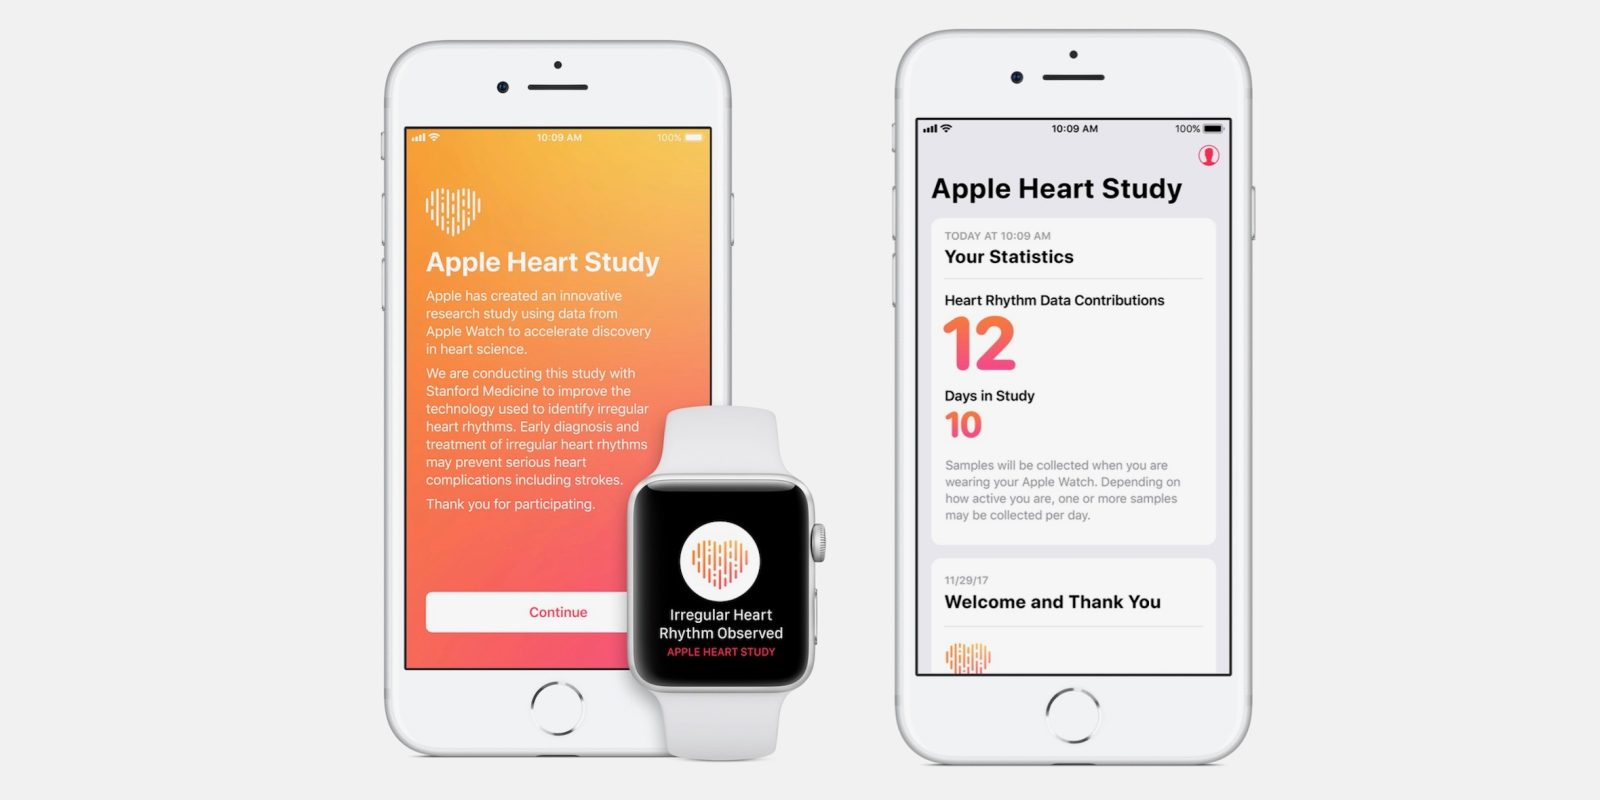 Stanford Medicine publishes full results from the Apple Watch Heart Study